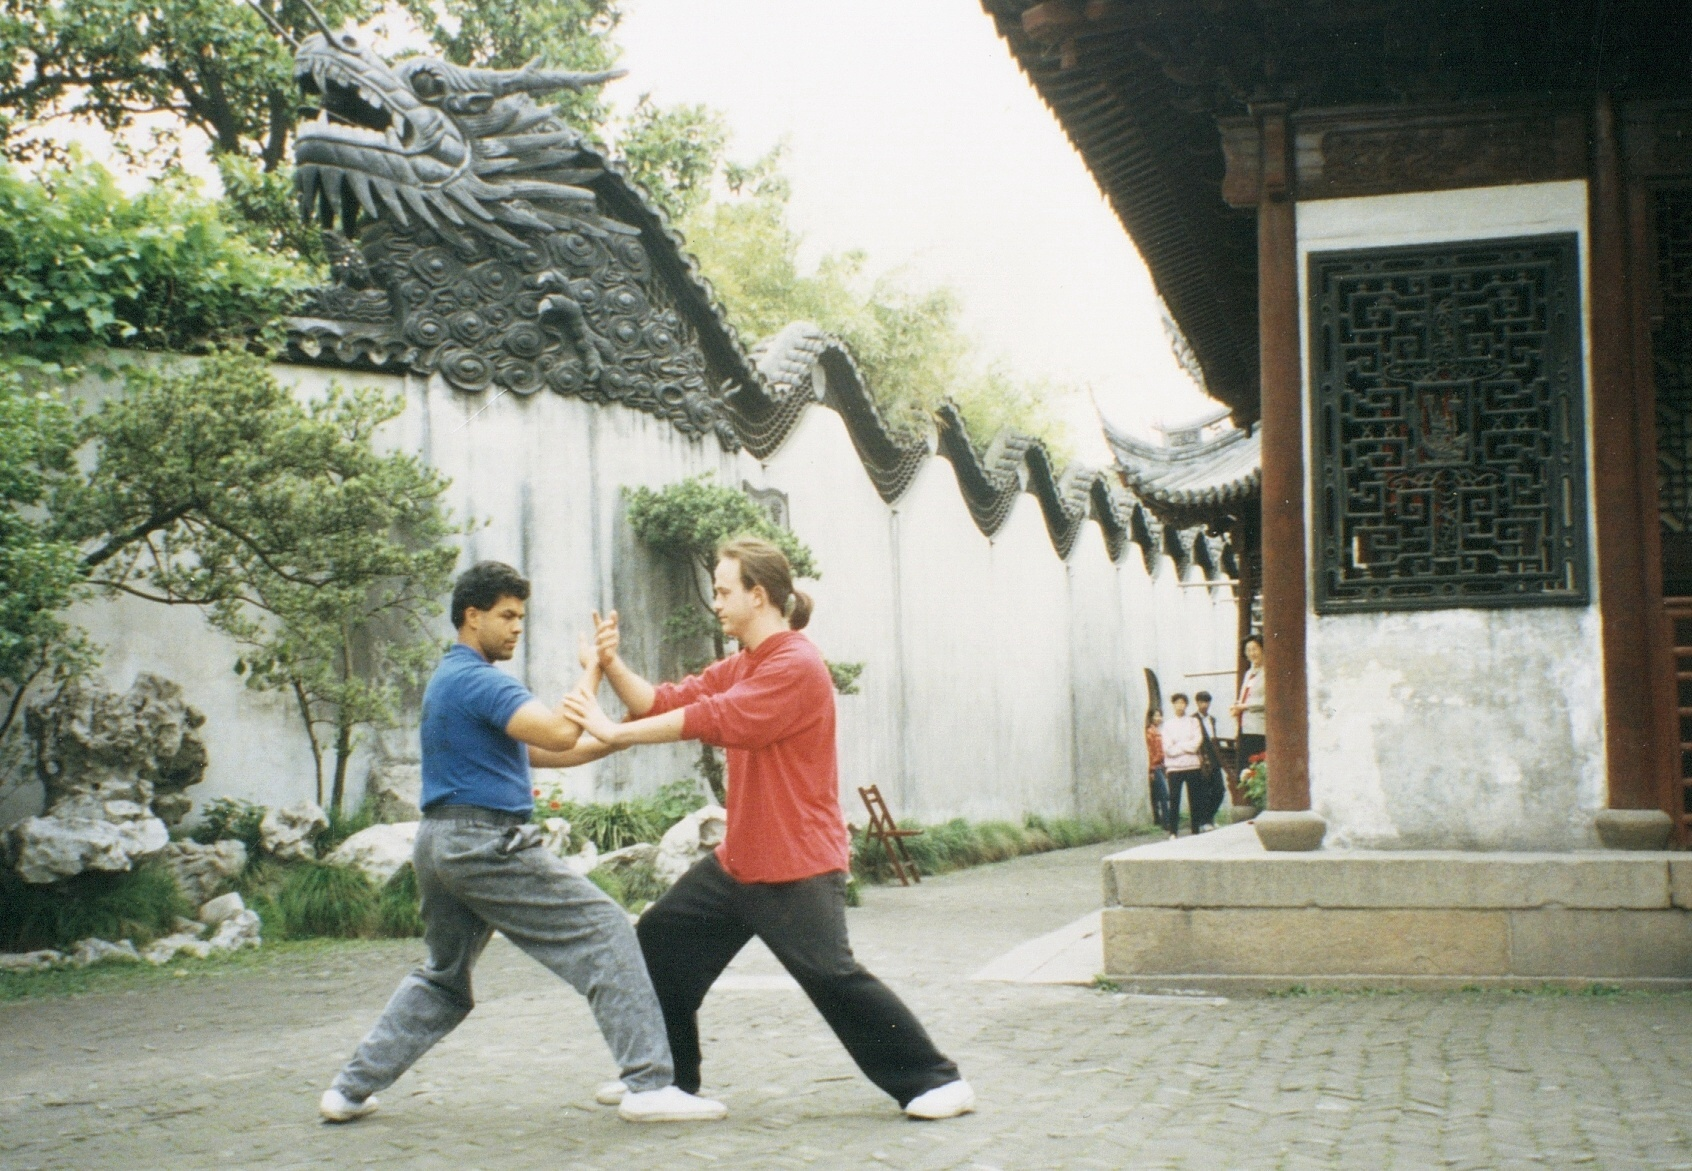 Paul Ramos and George Harris pushing in Shanghai, China